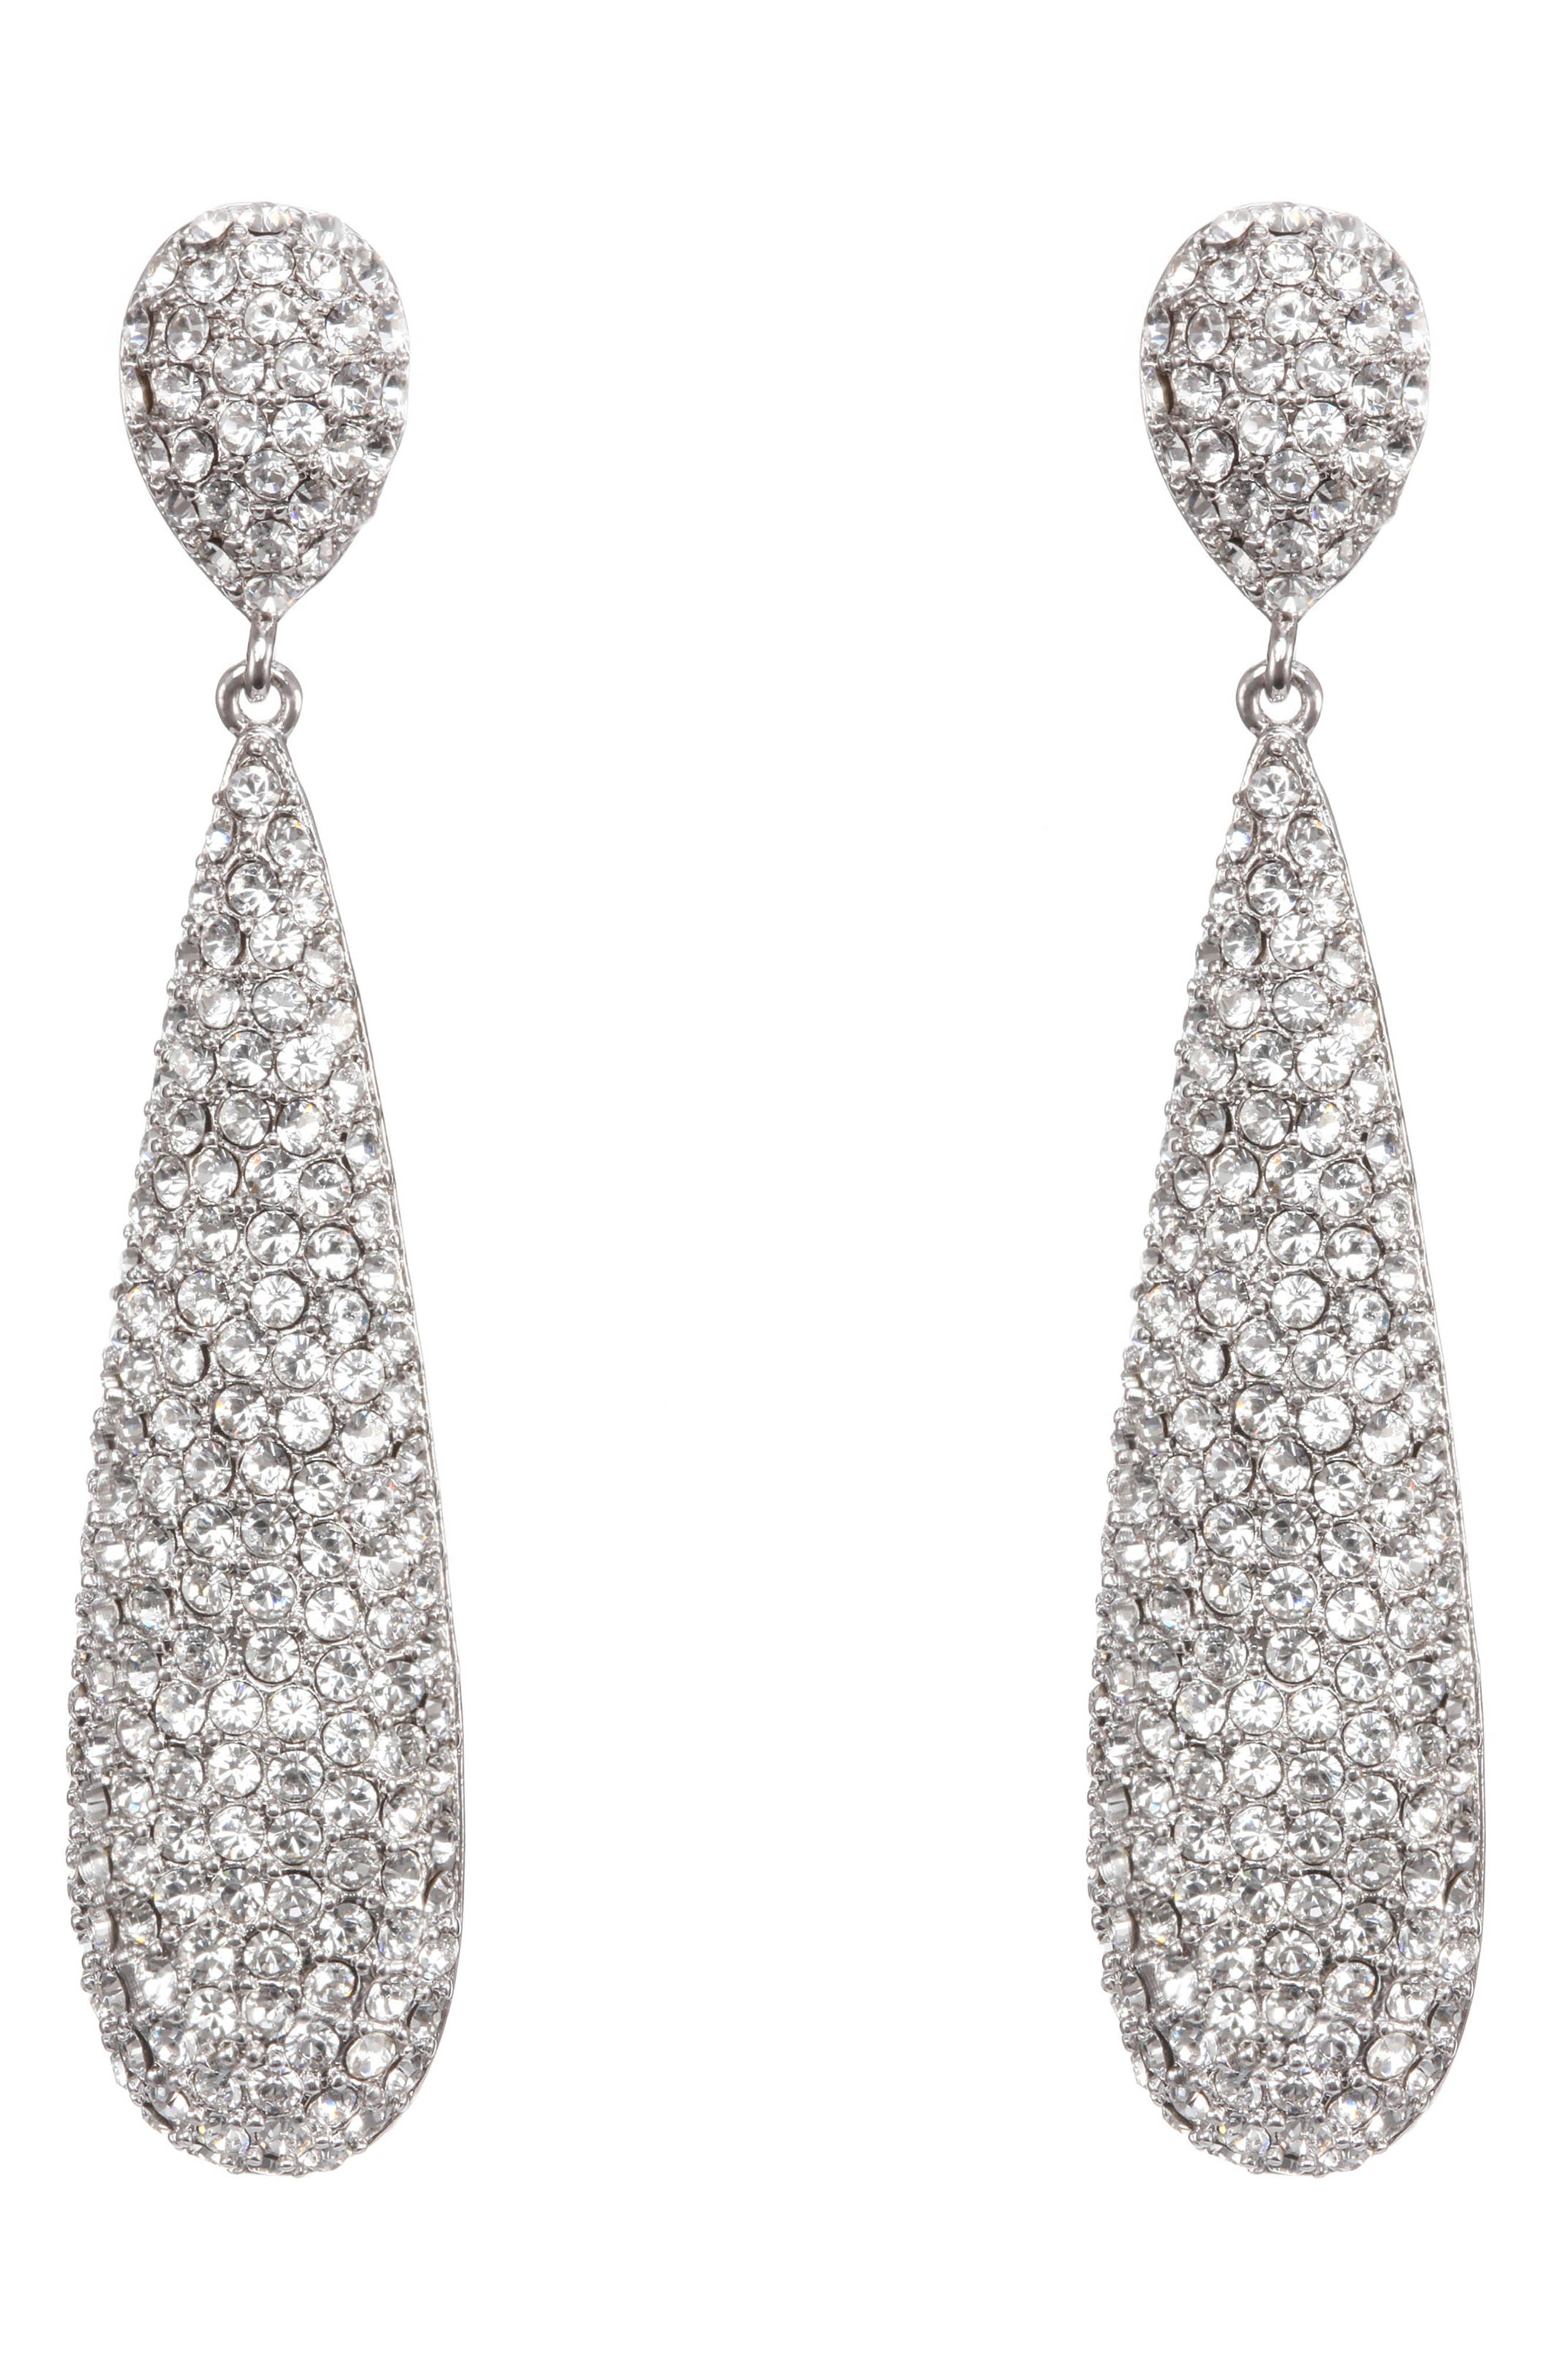 Elongated Pavé Swarovski Crystal Teardrop Earrings,                             Main thumbnail 1, color,                             WHITE/ SILVER